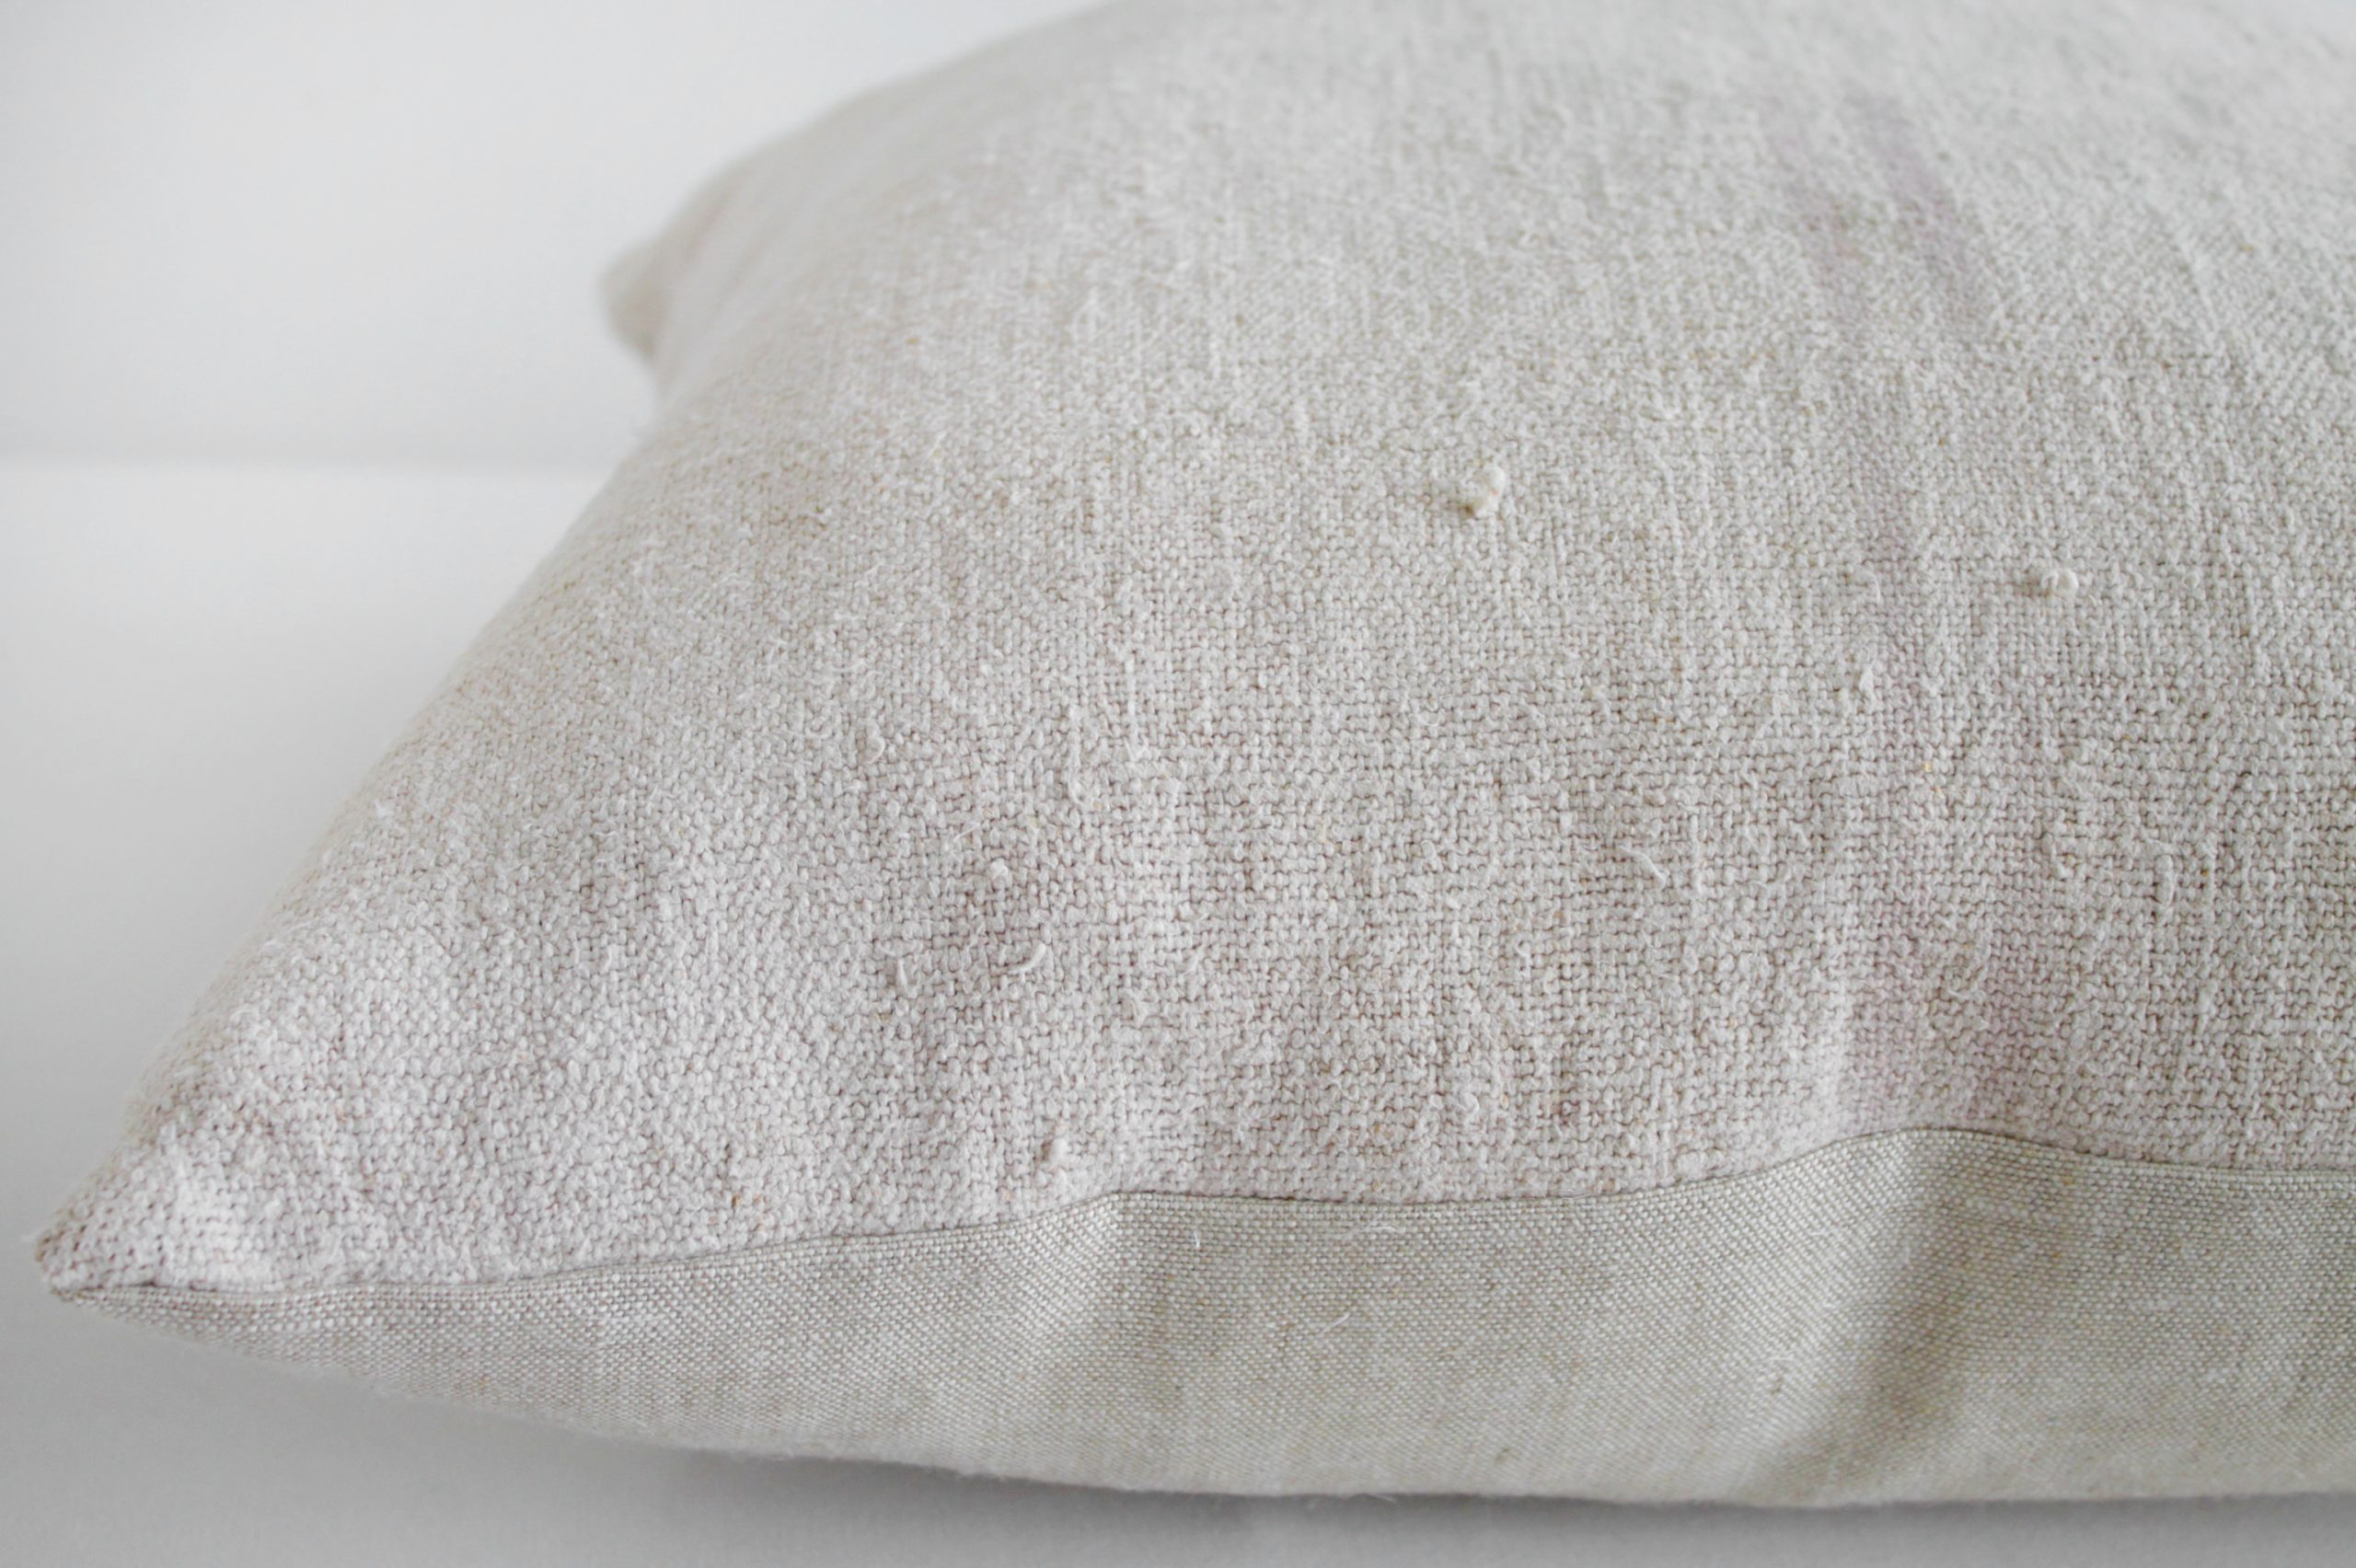 Vintage European Grain Sack Hemp Pillow with Pale Pink Stripes